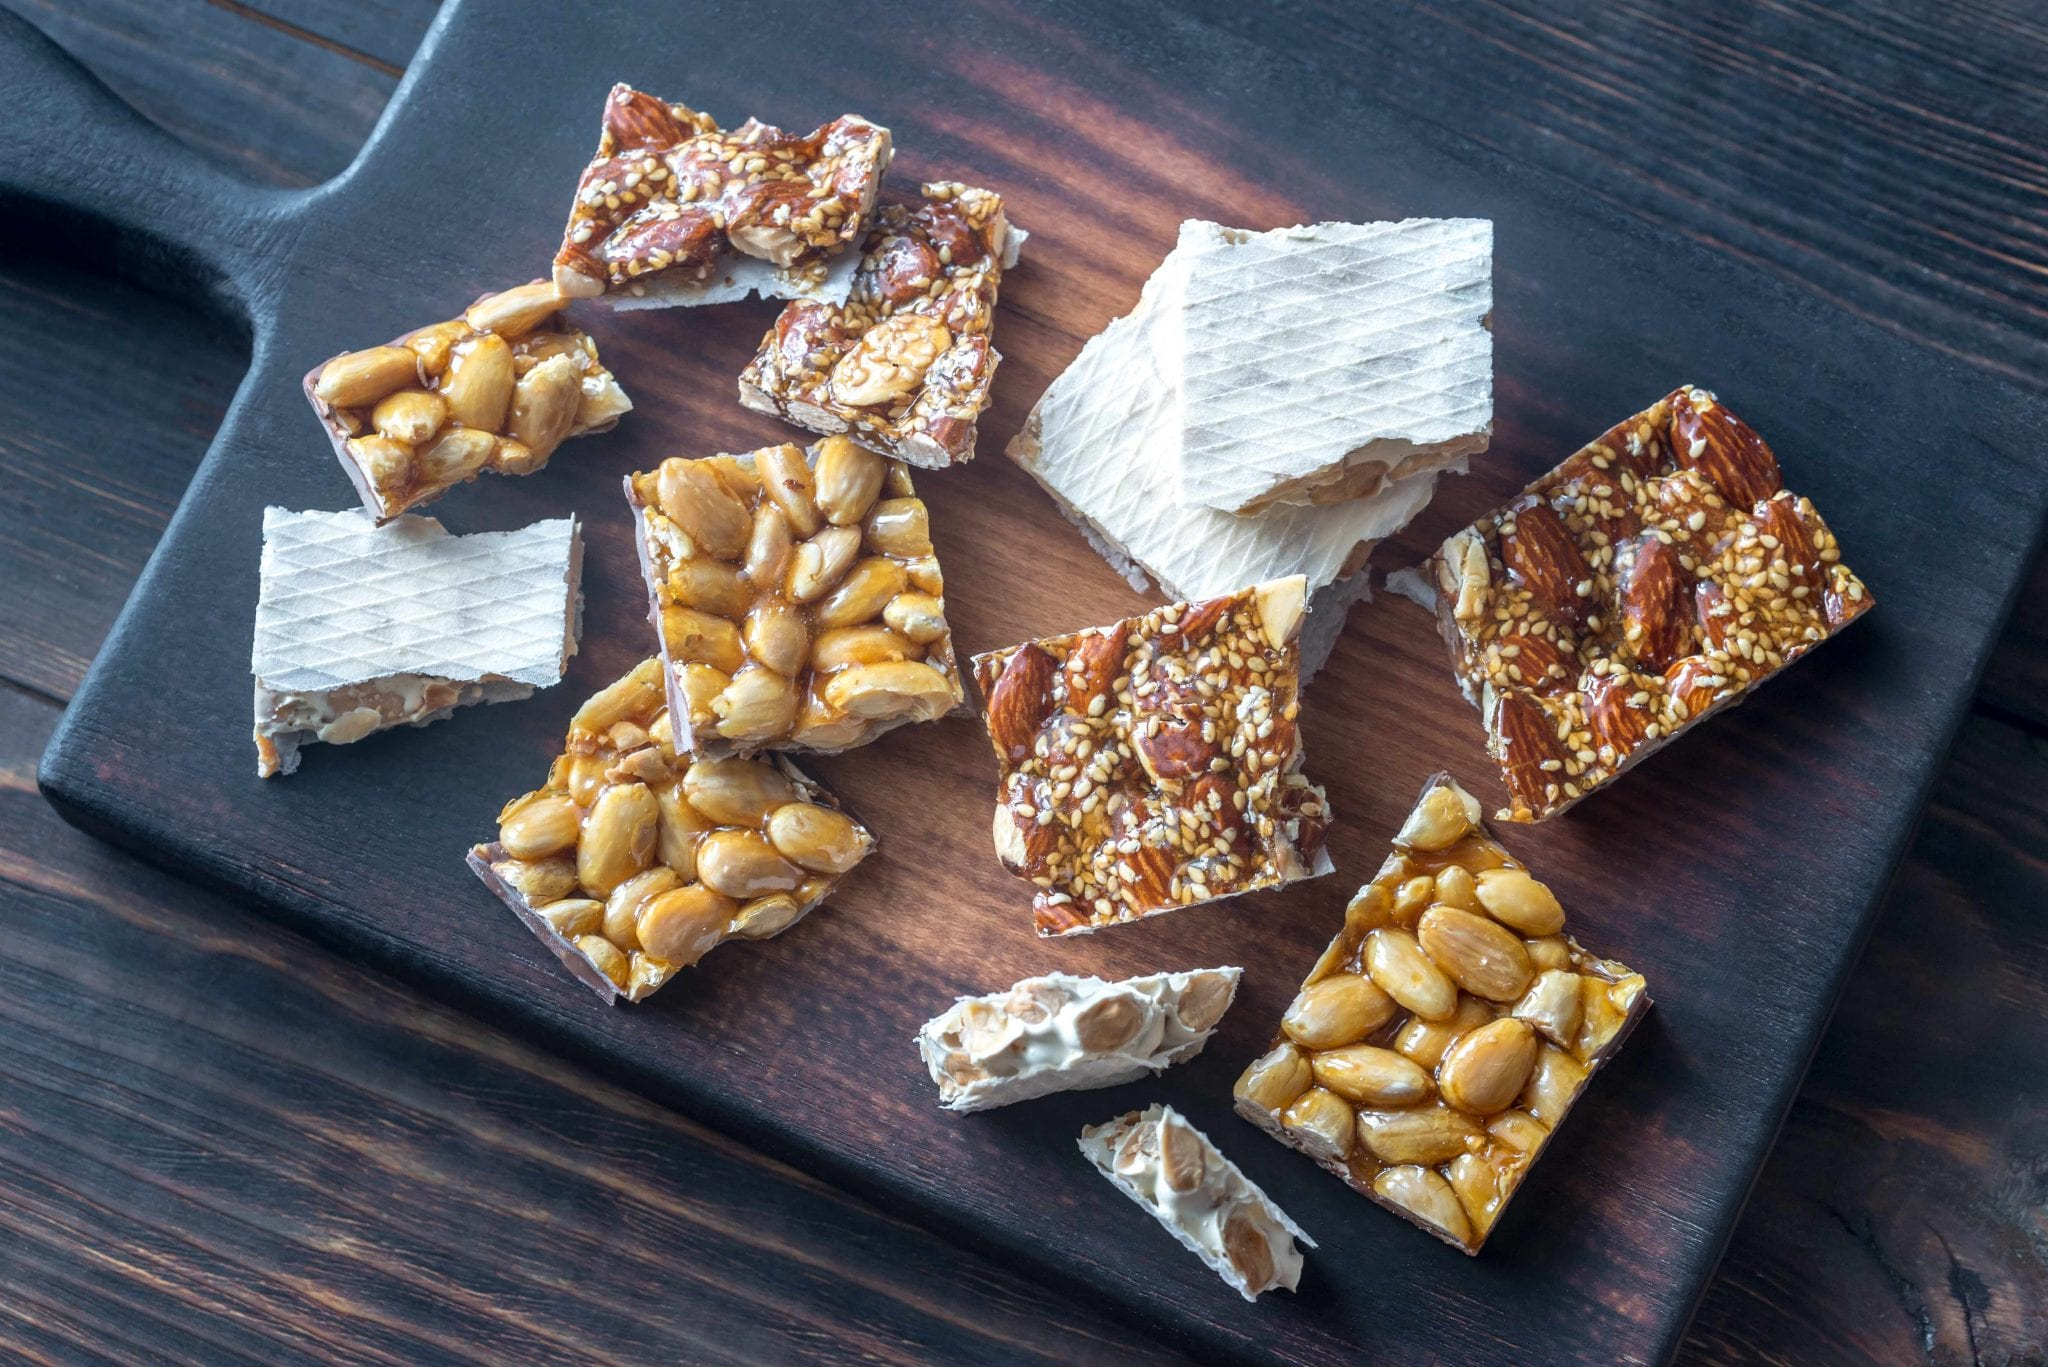 Slices of turron on the wooden board | Source: Stock image